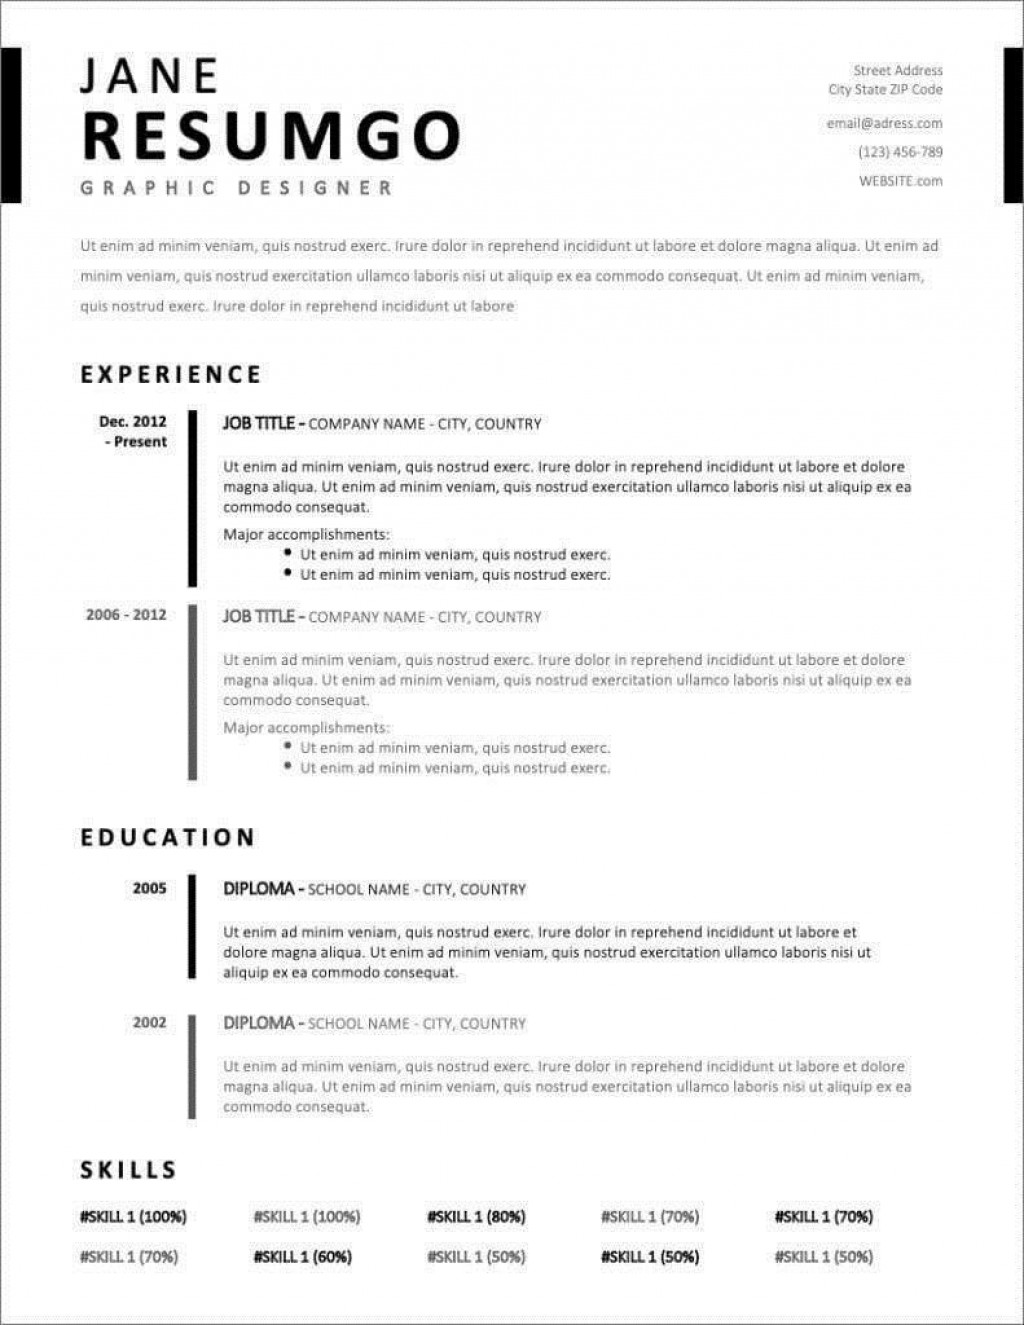 005 Awesome Download Resume Template Free Word Concept  Attractive Microsoft Simple For CreativeLarge